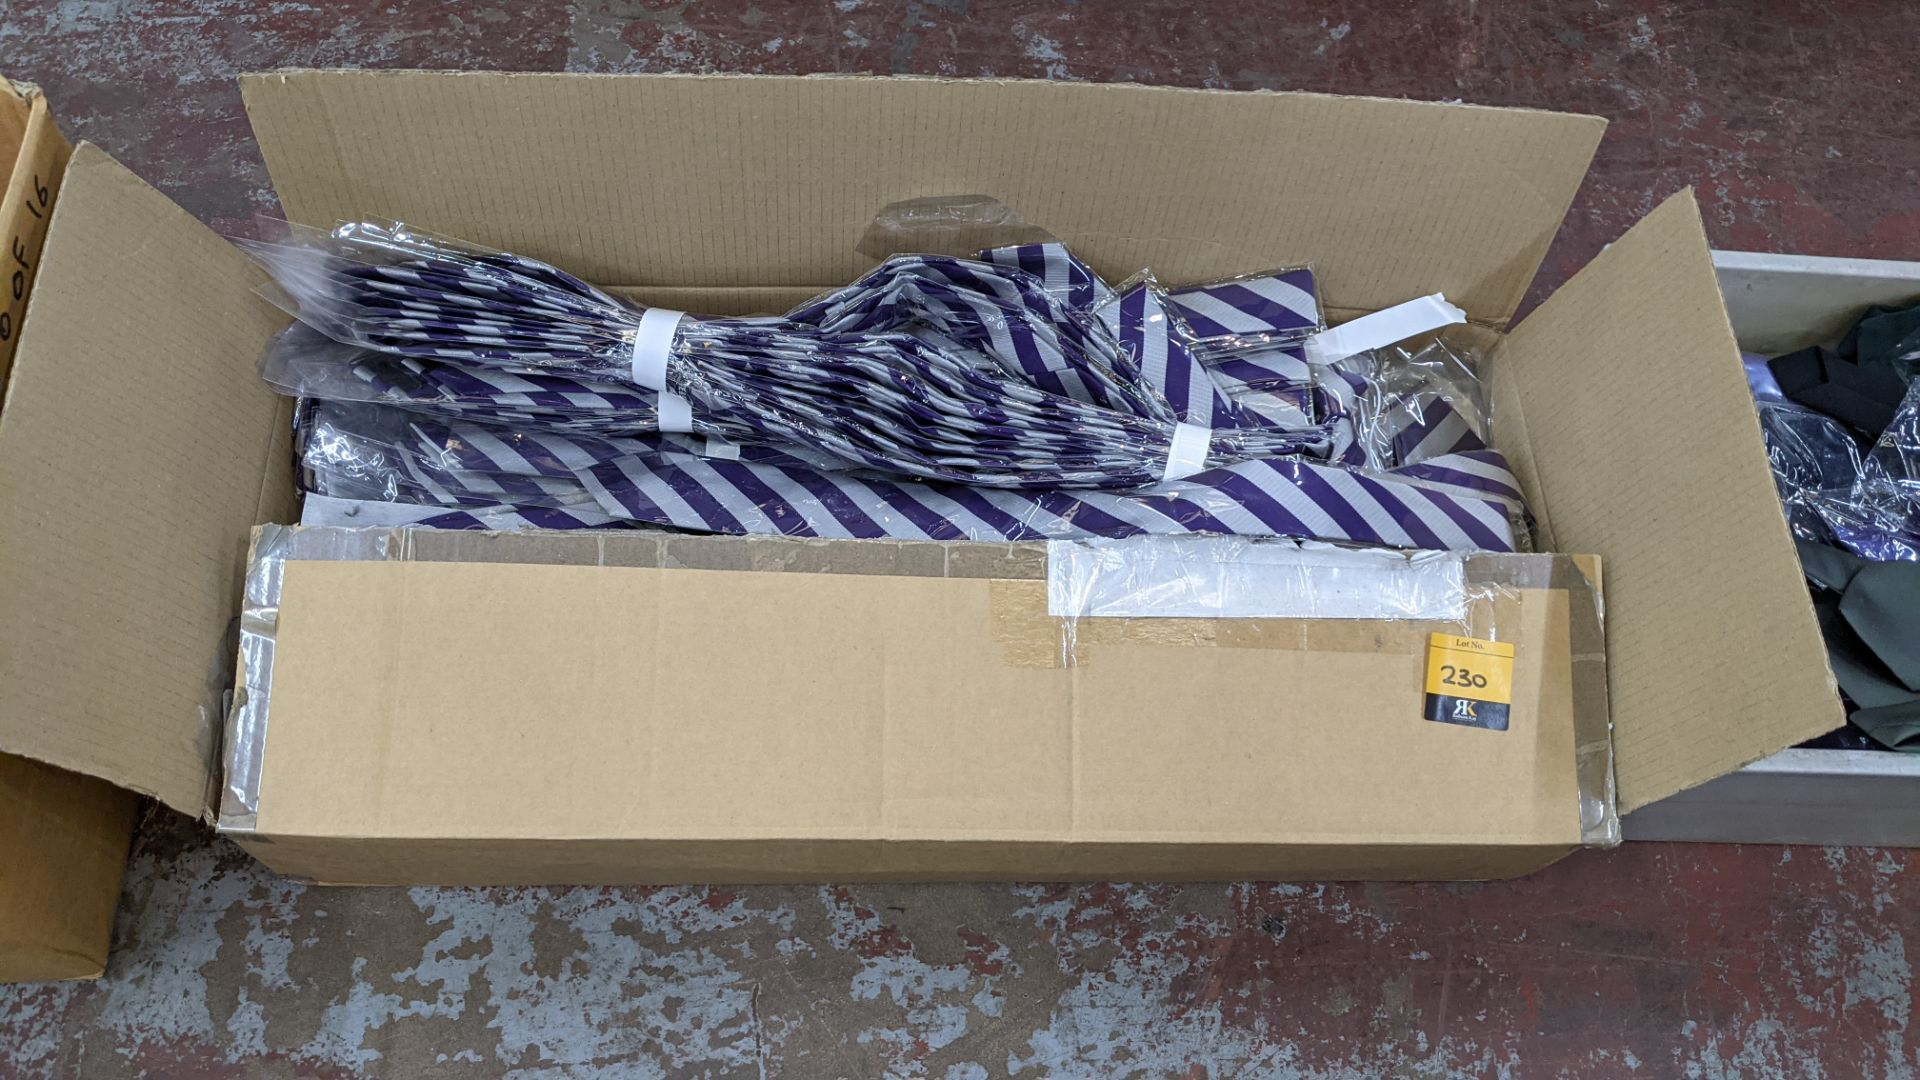 Box of purple & silver striped ties